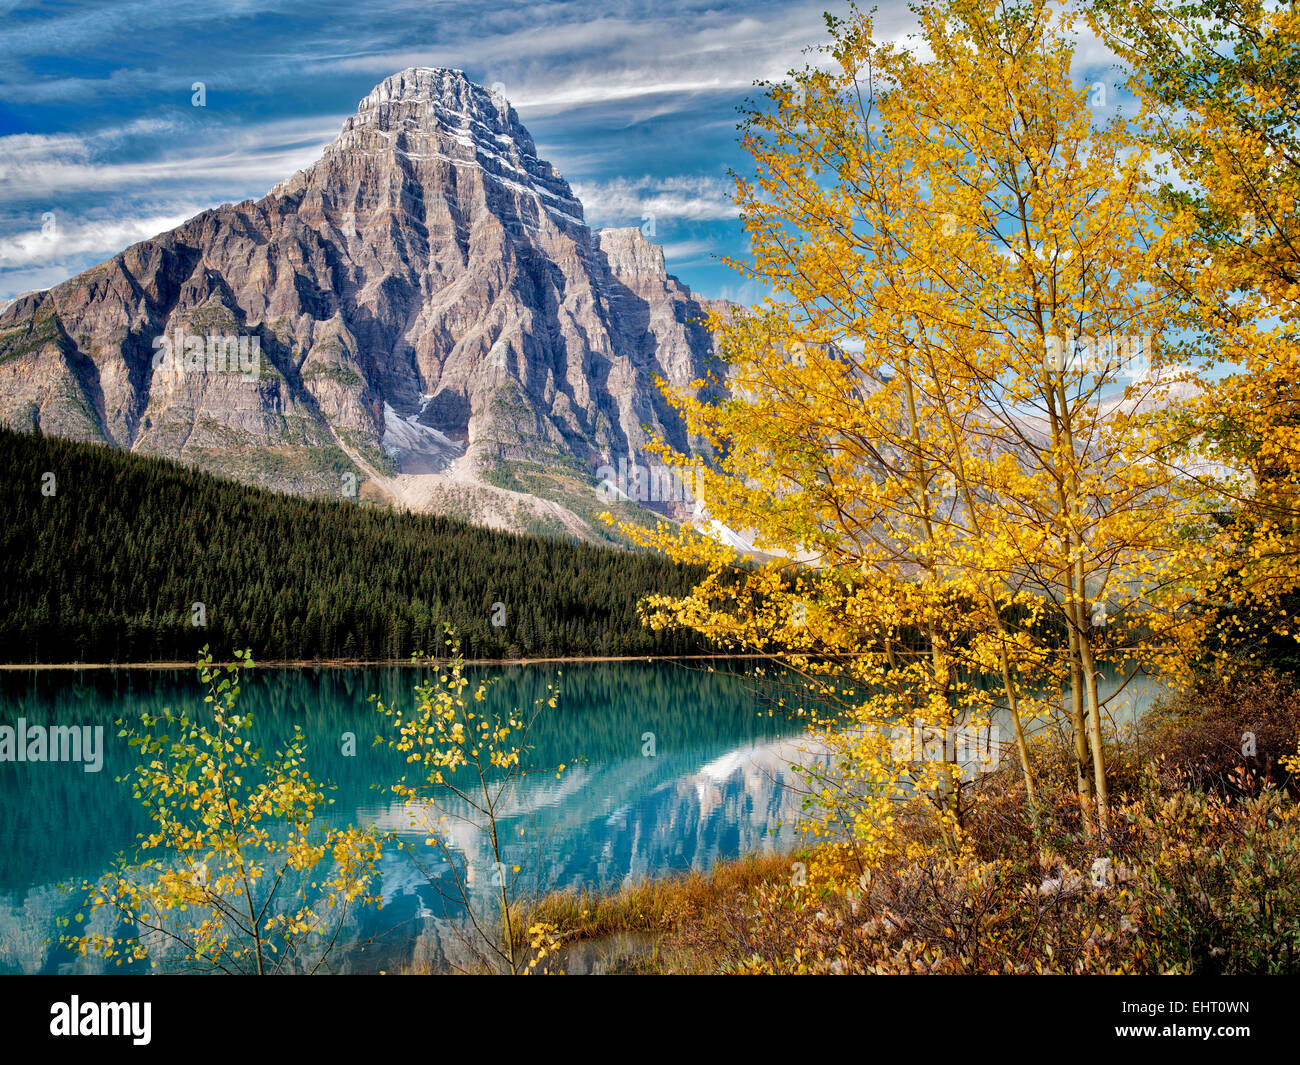 Waterfaowl Lacs et Mt. Chephren avec couleur automne trembles. Le parc national Banff. L'Alberta, Canada Photo Stock